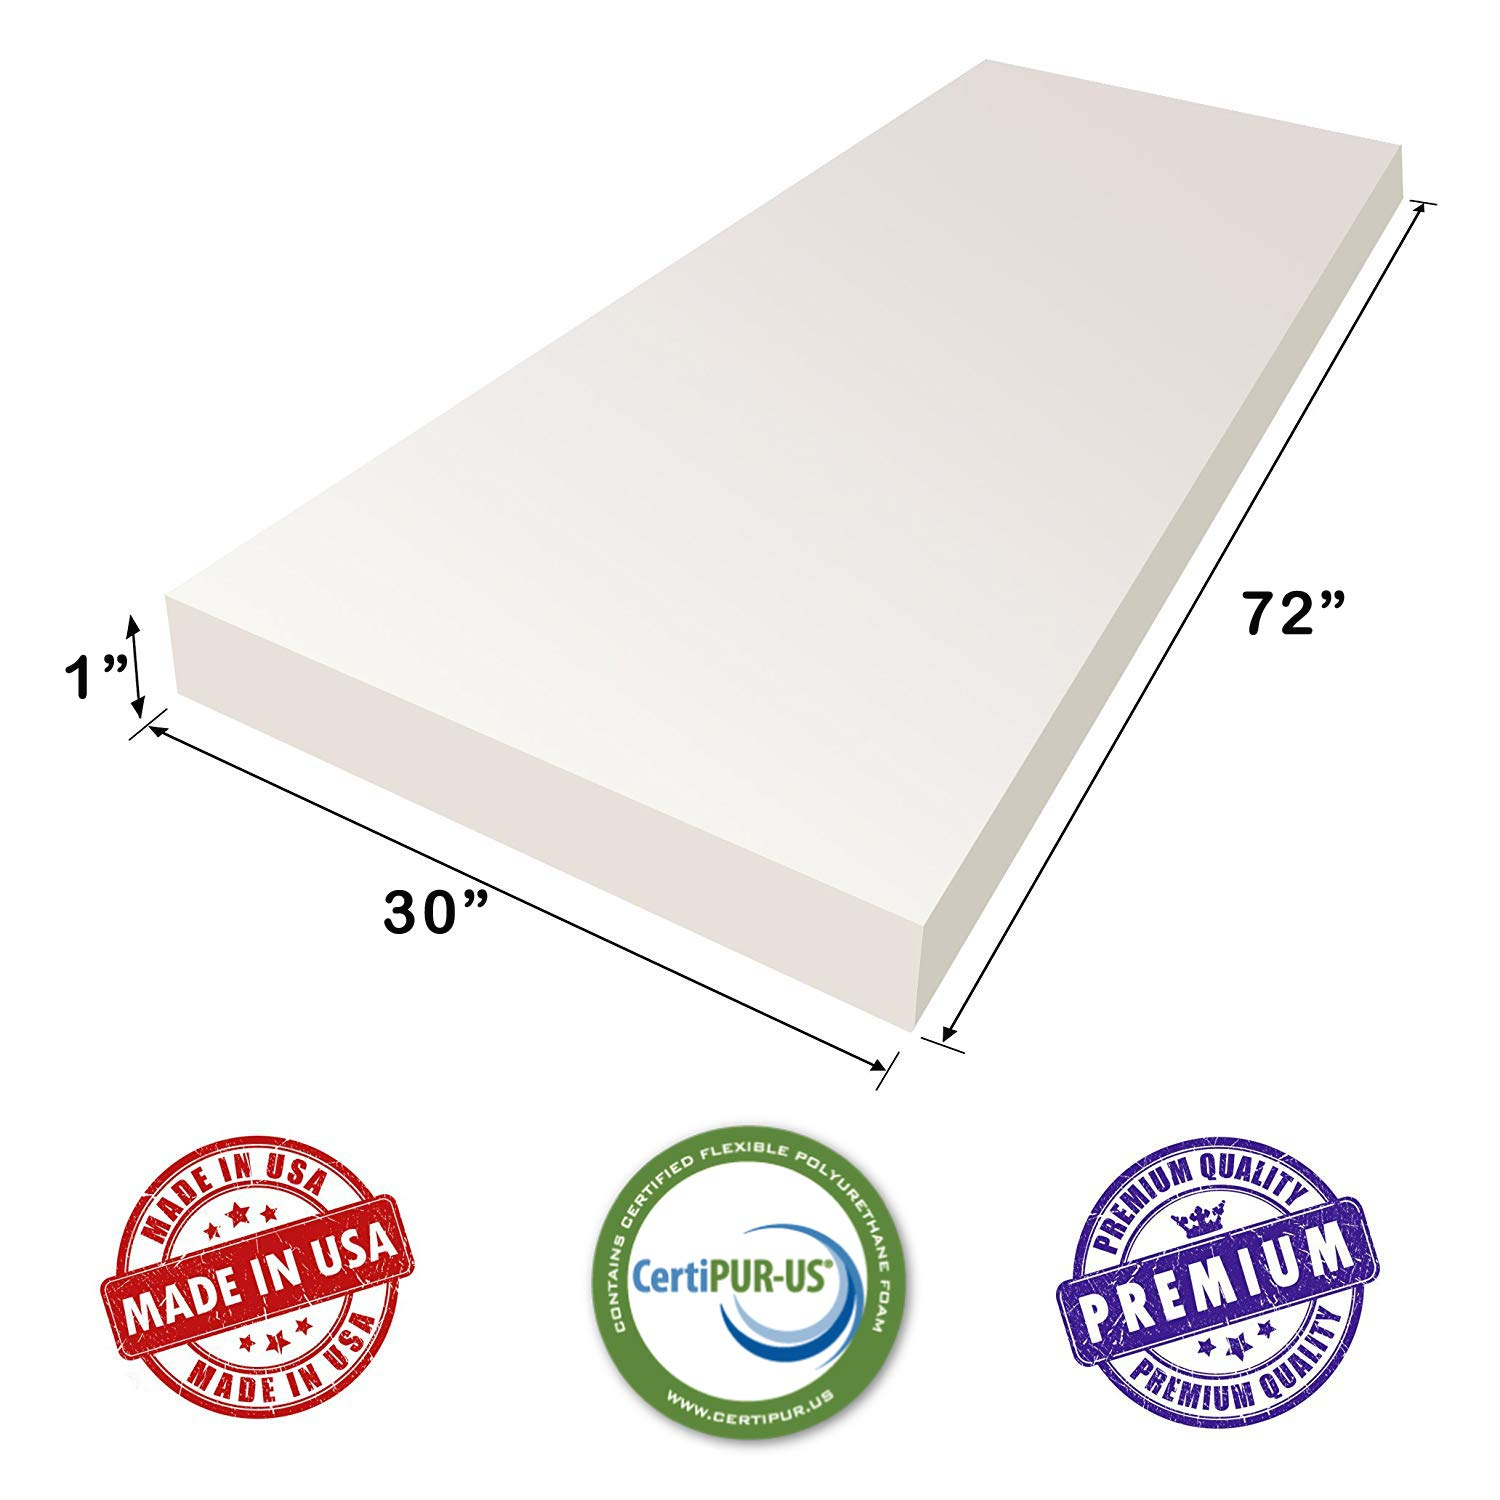 1 H X 24 W x 72L Upholstery Foam Cushion CertiPUR-US Certified. Seat Replacement, Upholstery Sheet, Foam Padding AK TRADING CO